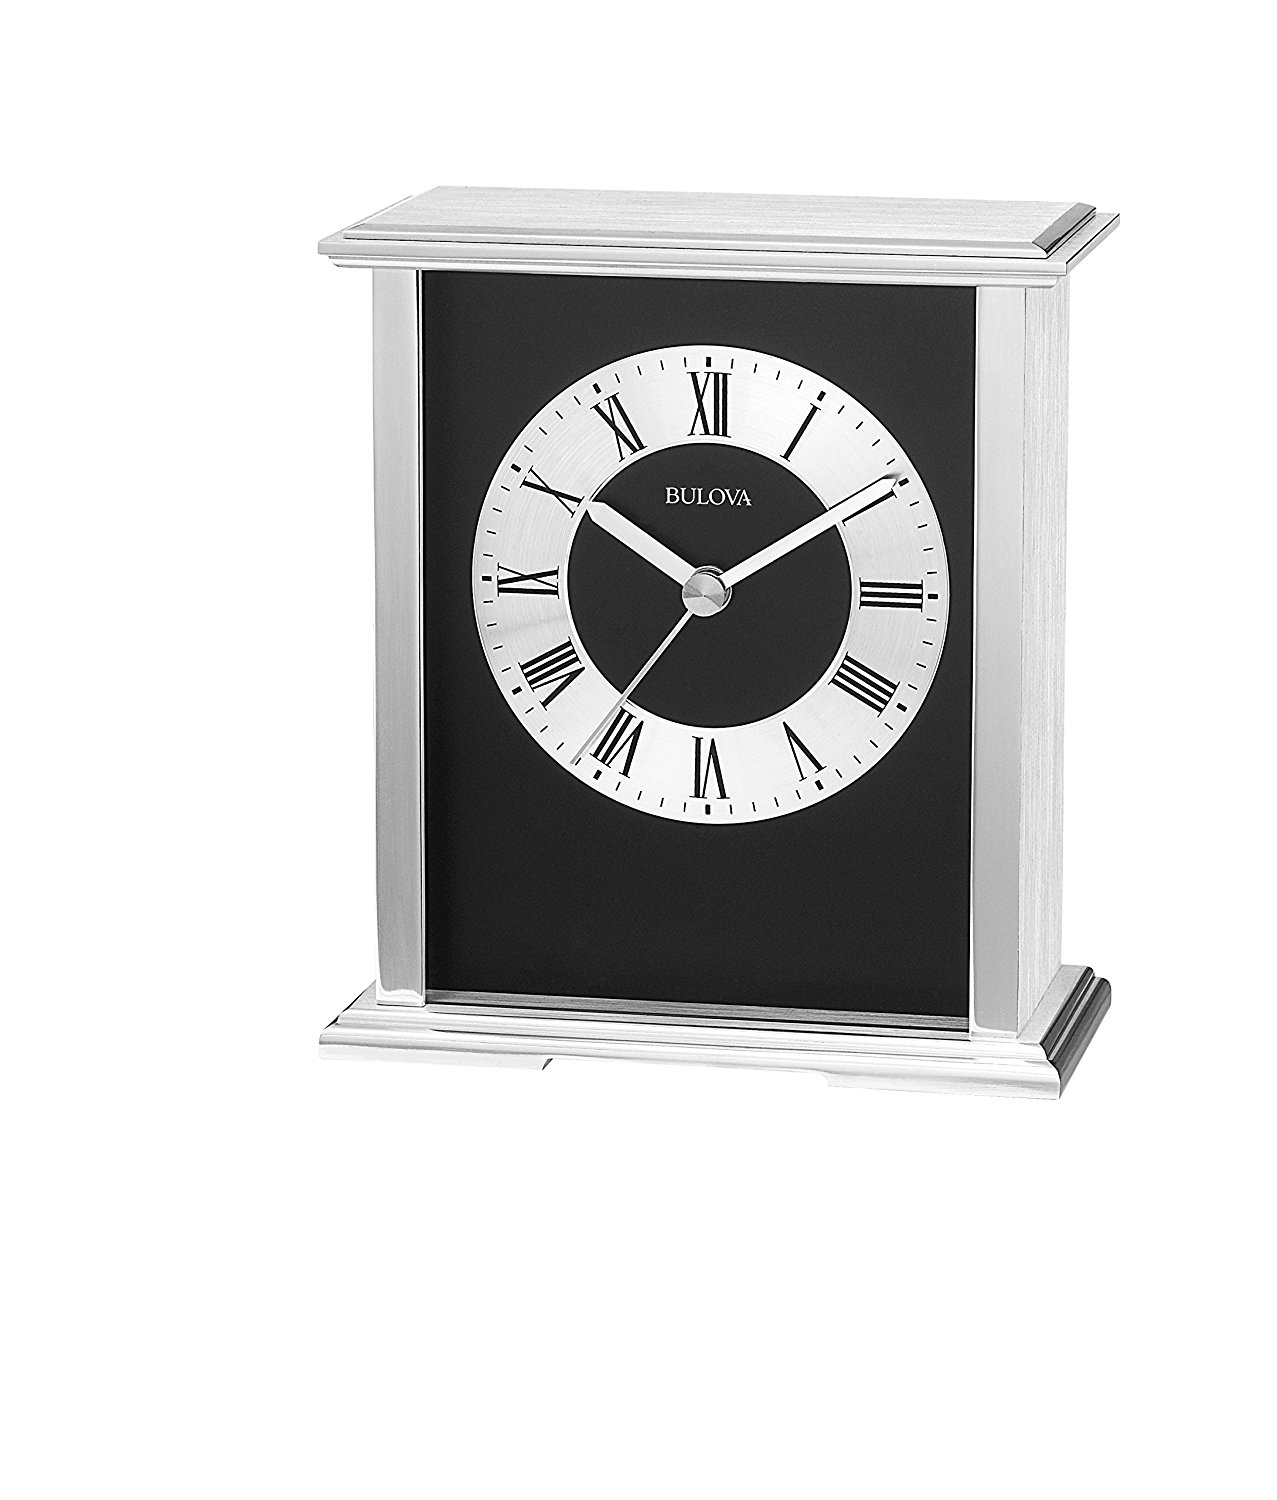 Bulova Thayer Mantel Clock | Bulova Mantel Clock | Bulova Holyoke Quartz Desk Clock